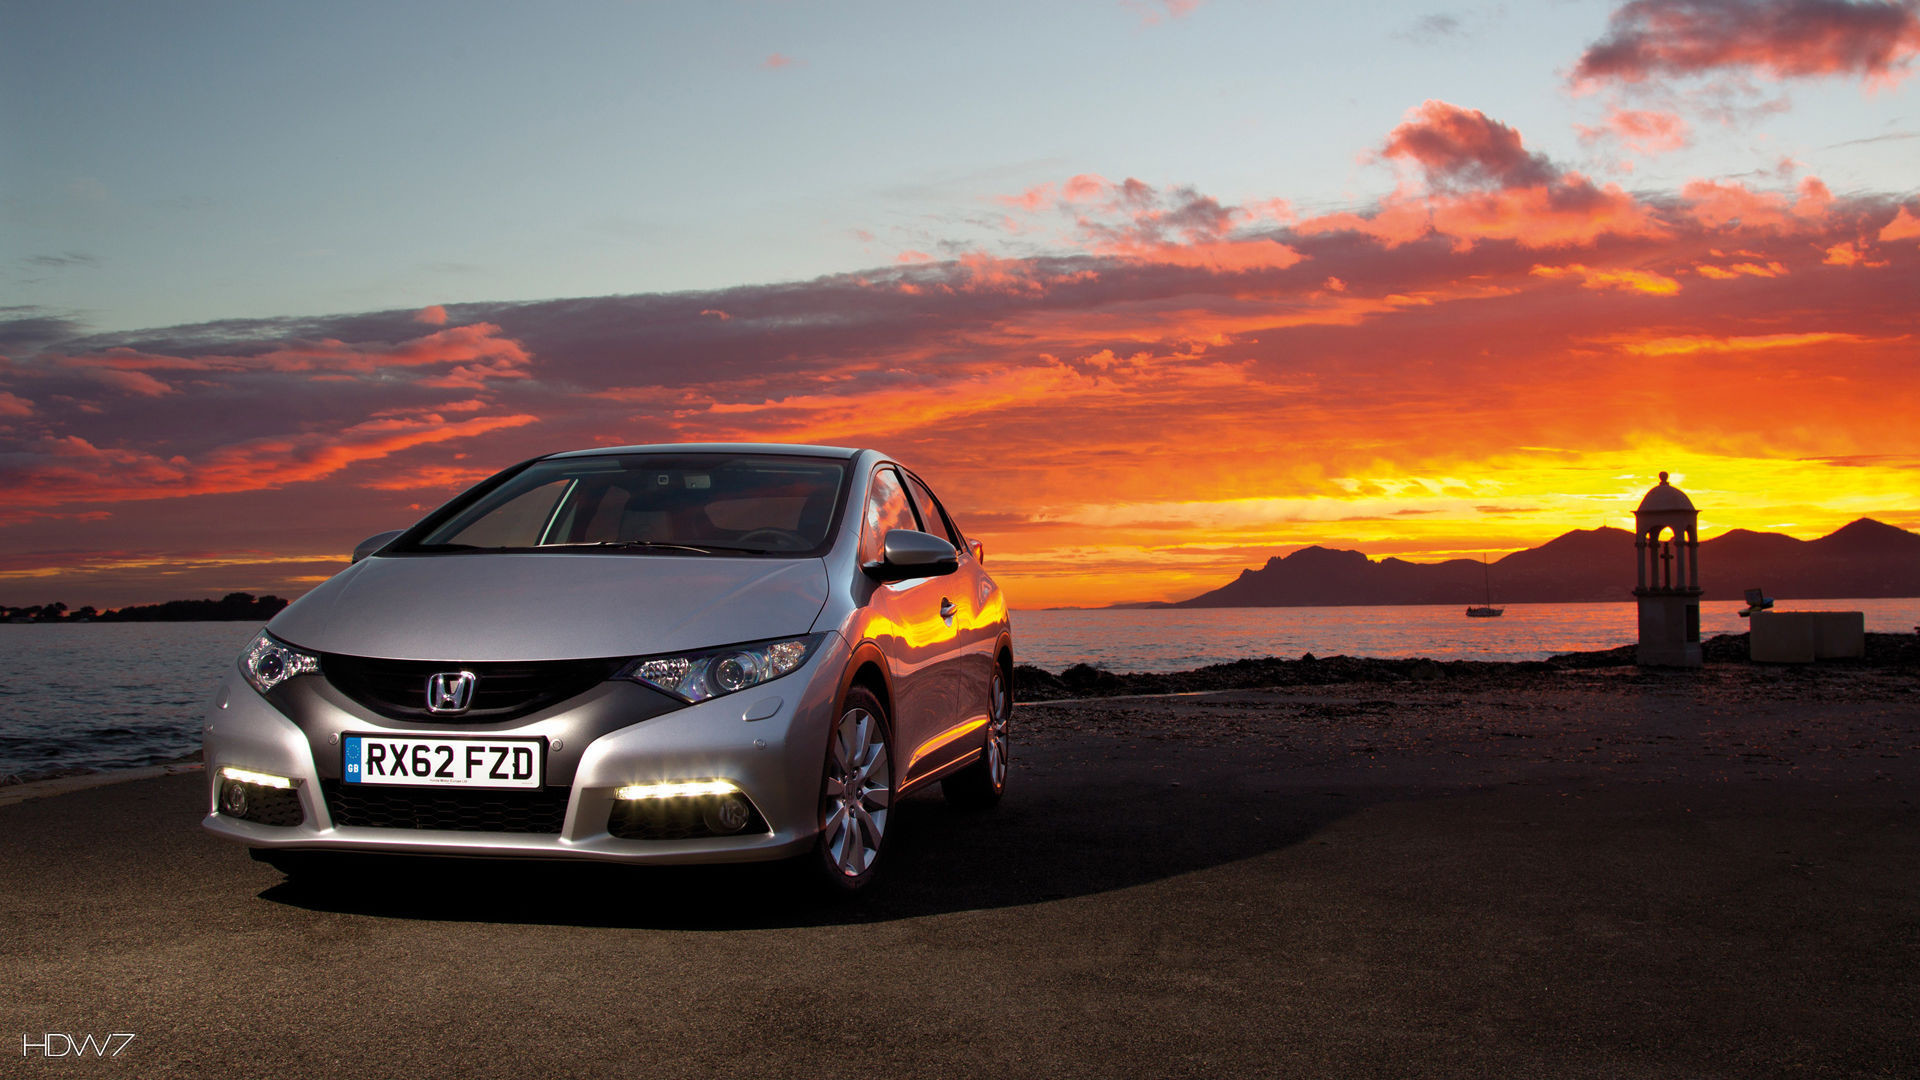 Honda Civic Wallpapers 68 Background Pictures